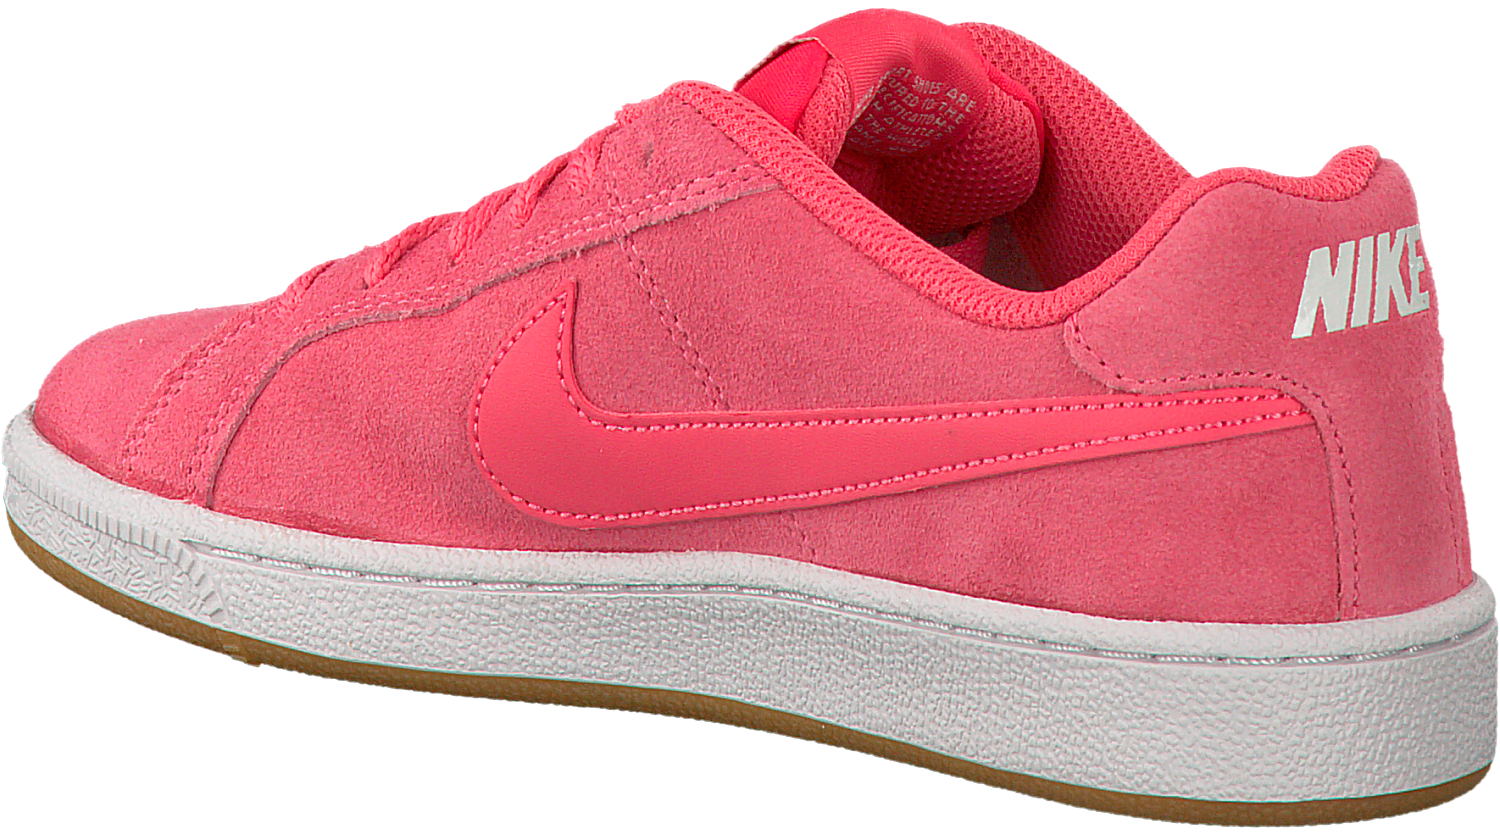 cf592f0ca7a Roze NIKE Sneakers COURT ROYALE SUEDE WMNS. NIKE. -50%. Previous